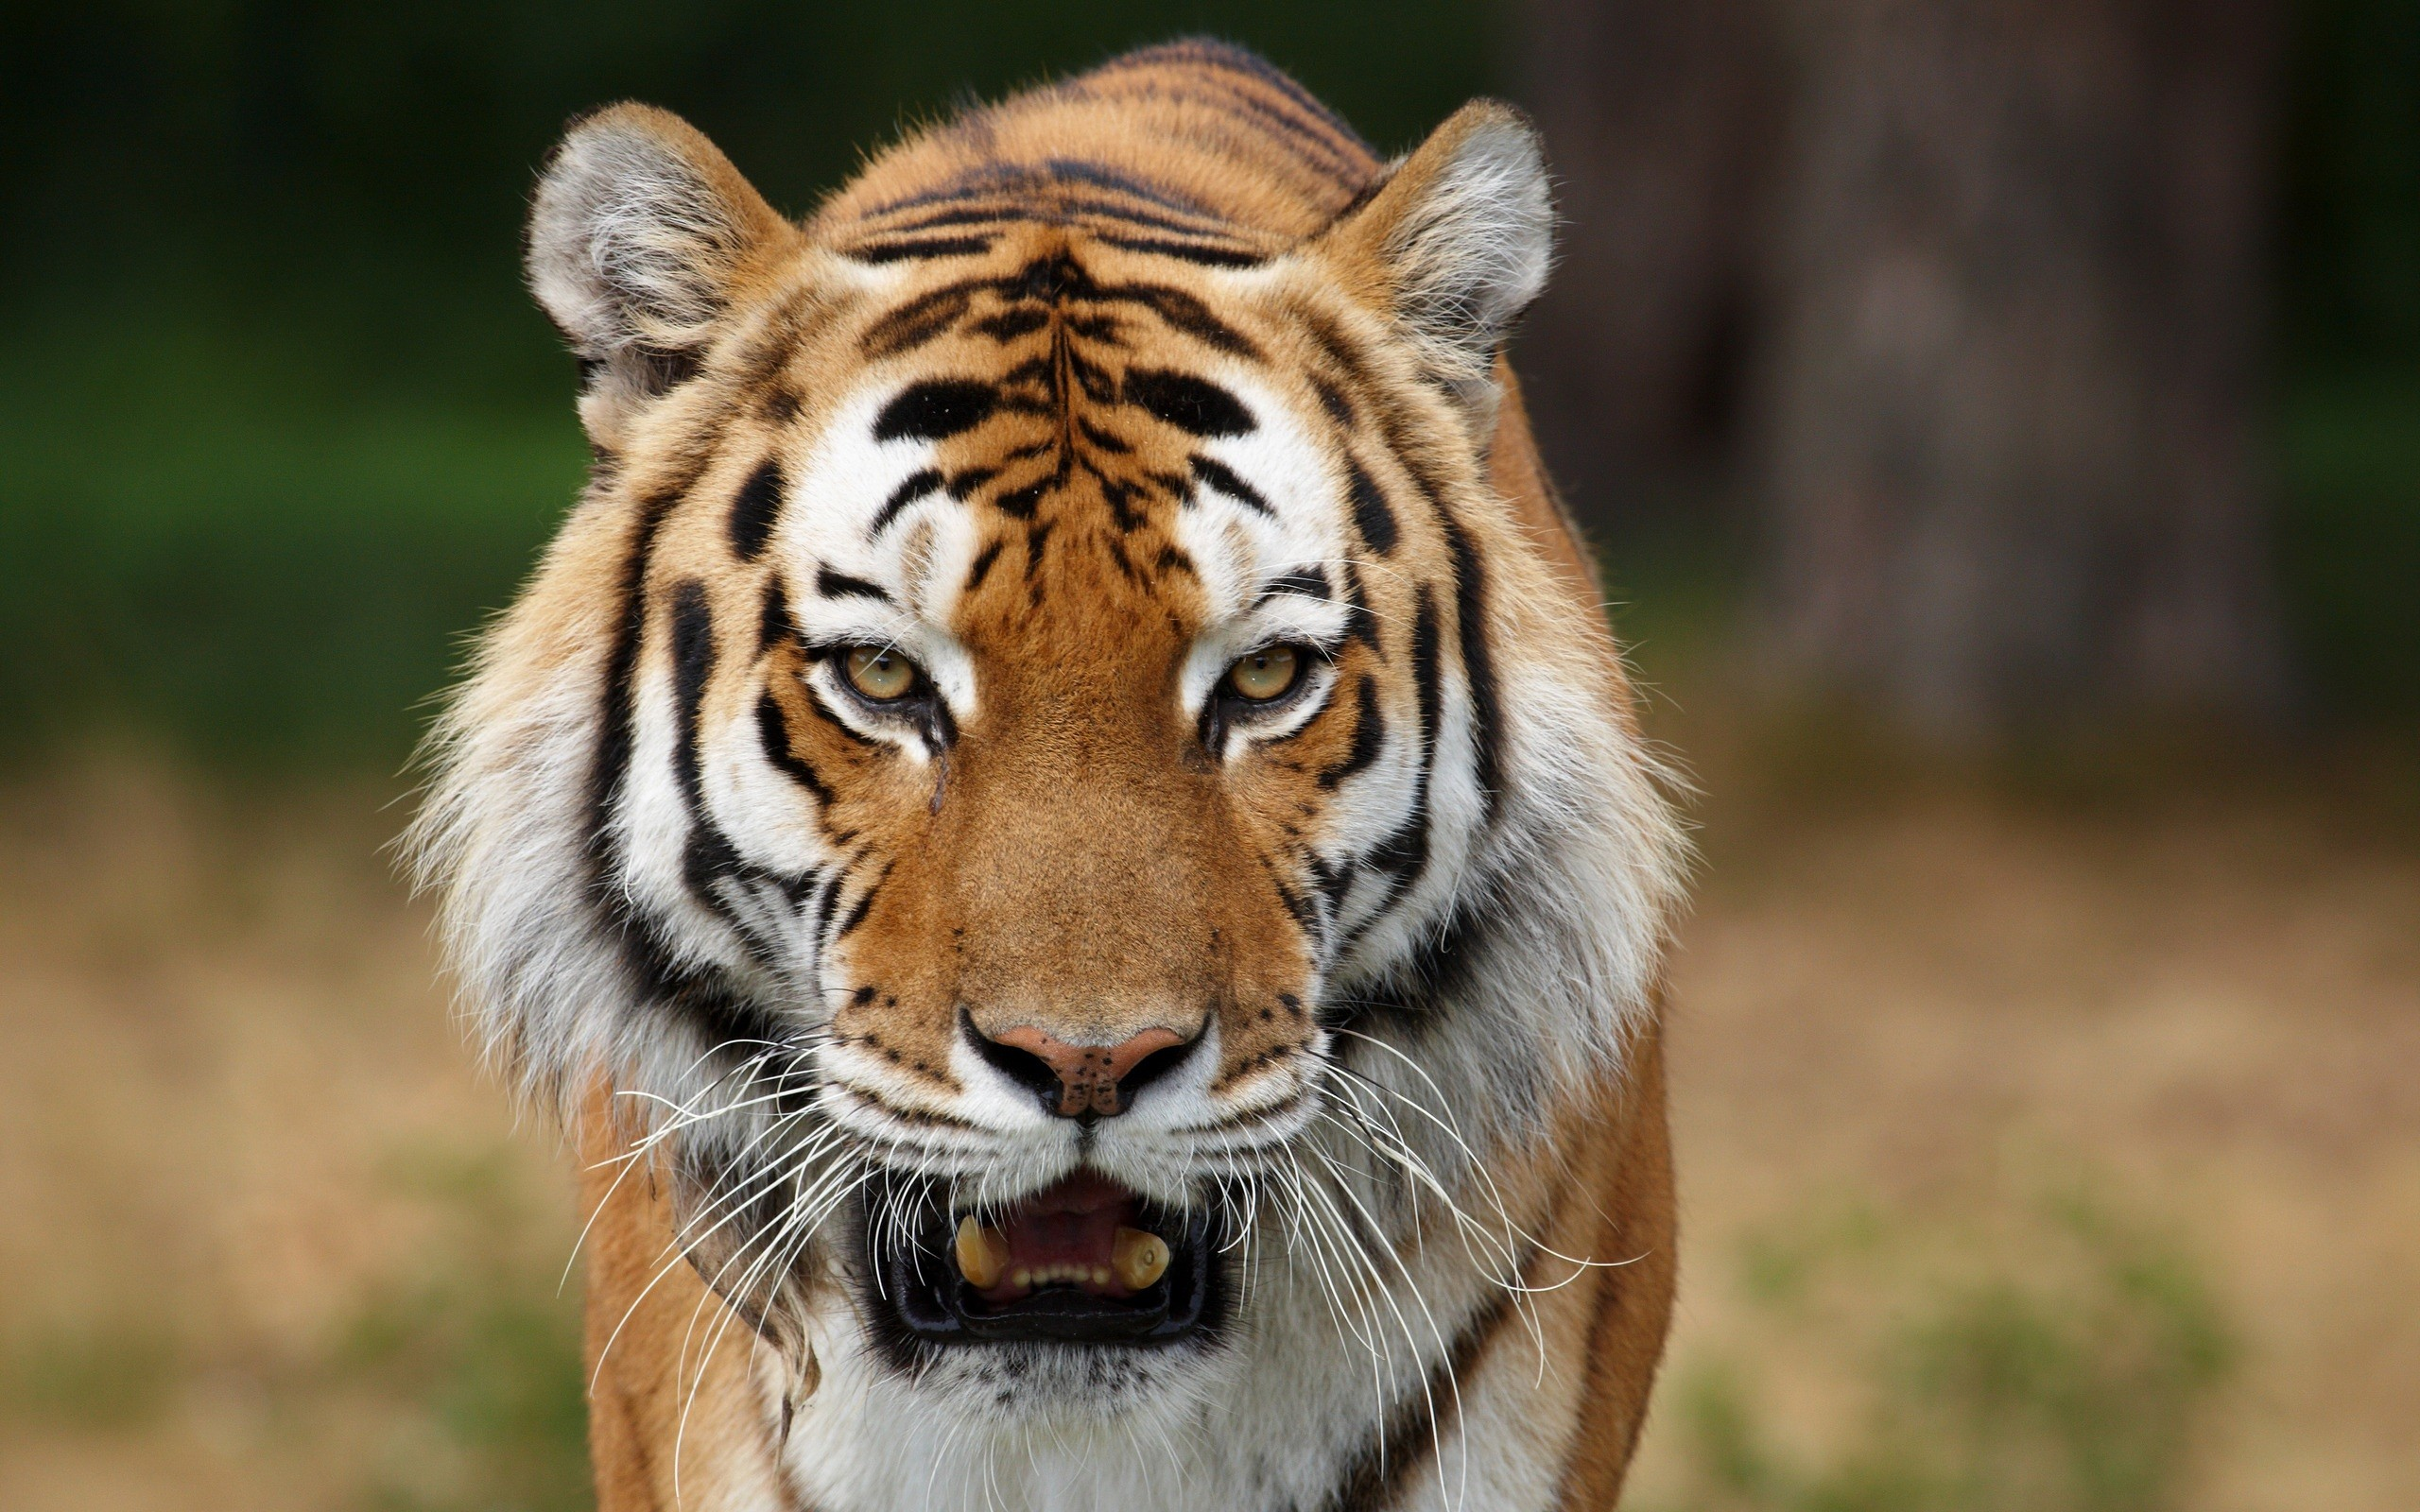 10 Unusual Tiger Facts - Facts about Tigers